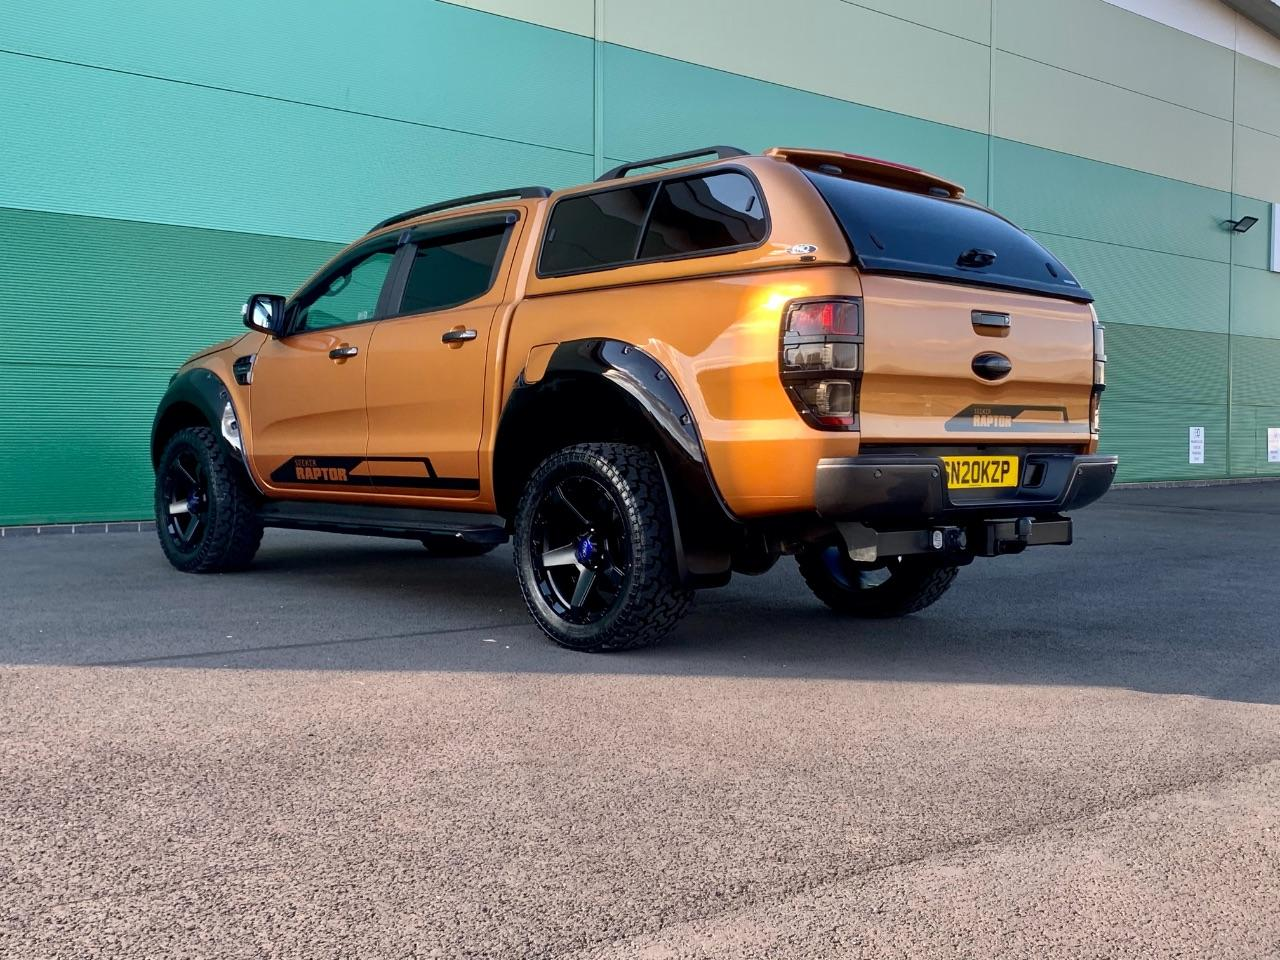 Ford Ranger Seeker raptor Pick Up Double Cab Wildtrak 2.0 EcoBlue 213 Auto 3.5 tion towing capacity Pick Up Diesel Orange